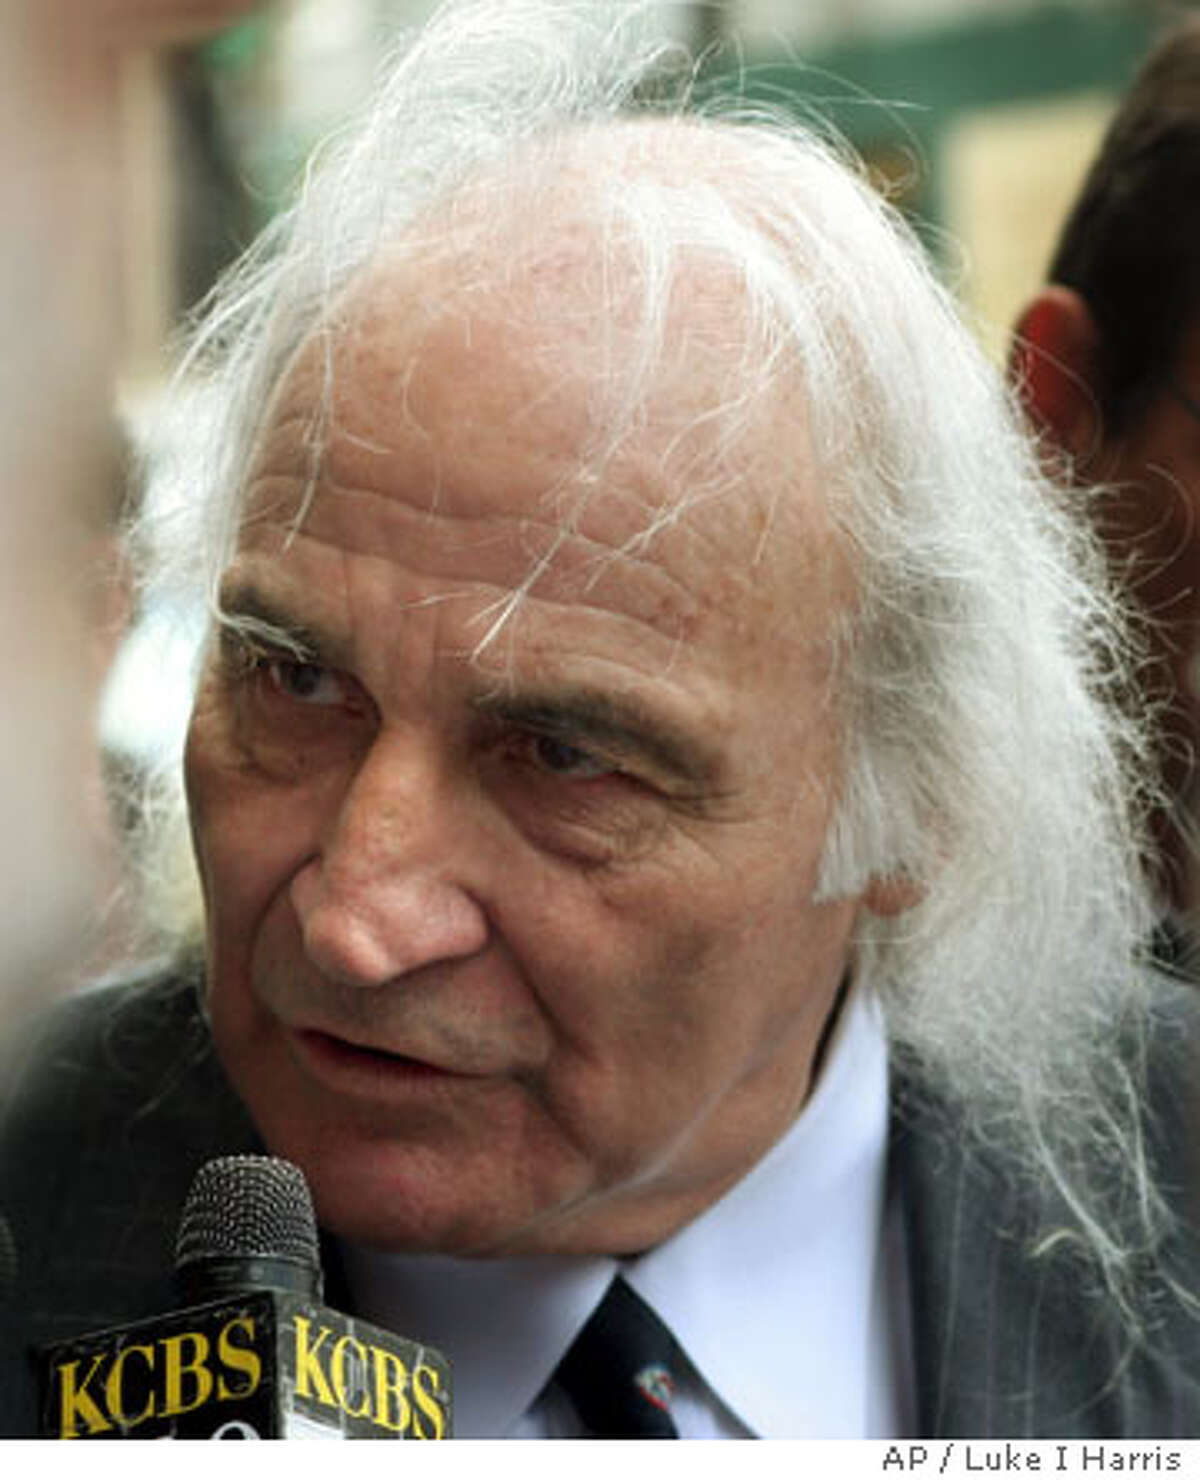 Attorney J. Tony Serra speaks to the media after being sentenced to 10 months in federal prison for failing to pay his income tax Friday, July 29, 2005, in San Francisco. Serra, the civil rights lawyer who inspired the 1988 movie